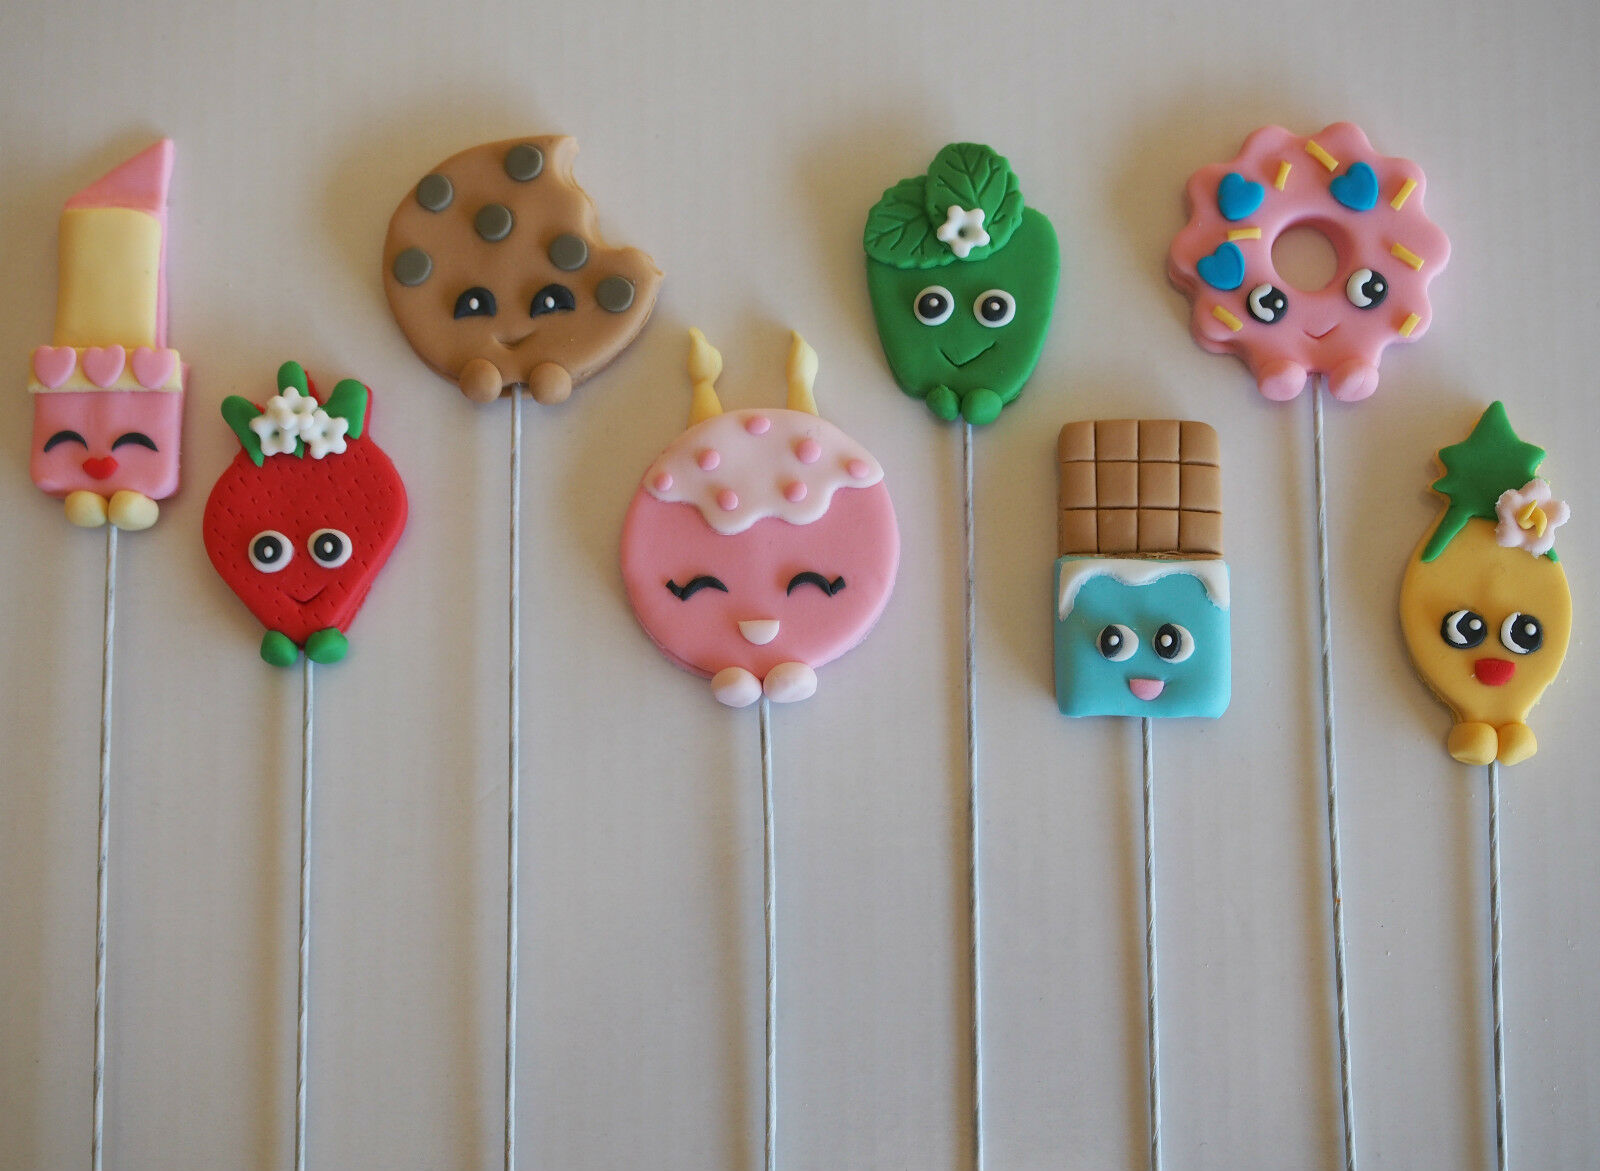 ... Shopkins Characters on wires CAKE TOPPERS Birthday Cupcake Decorations